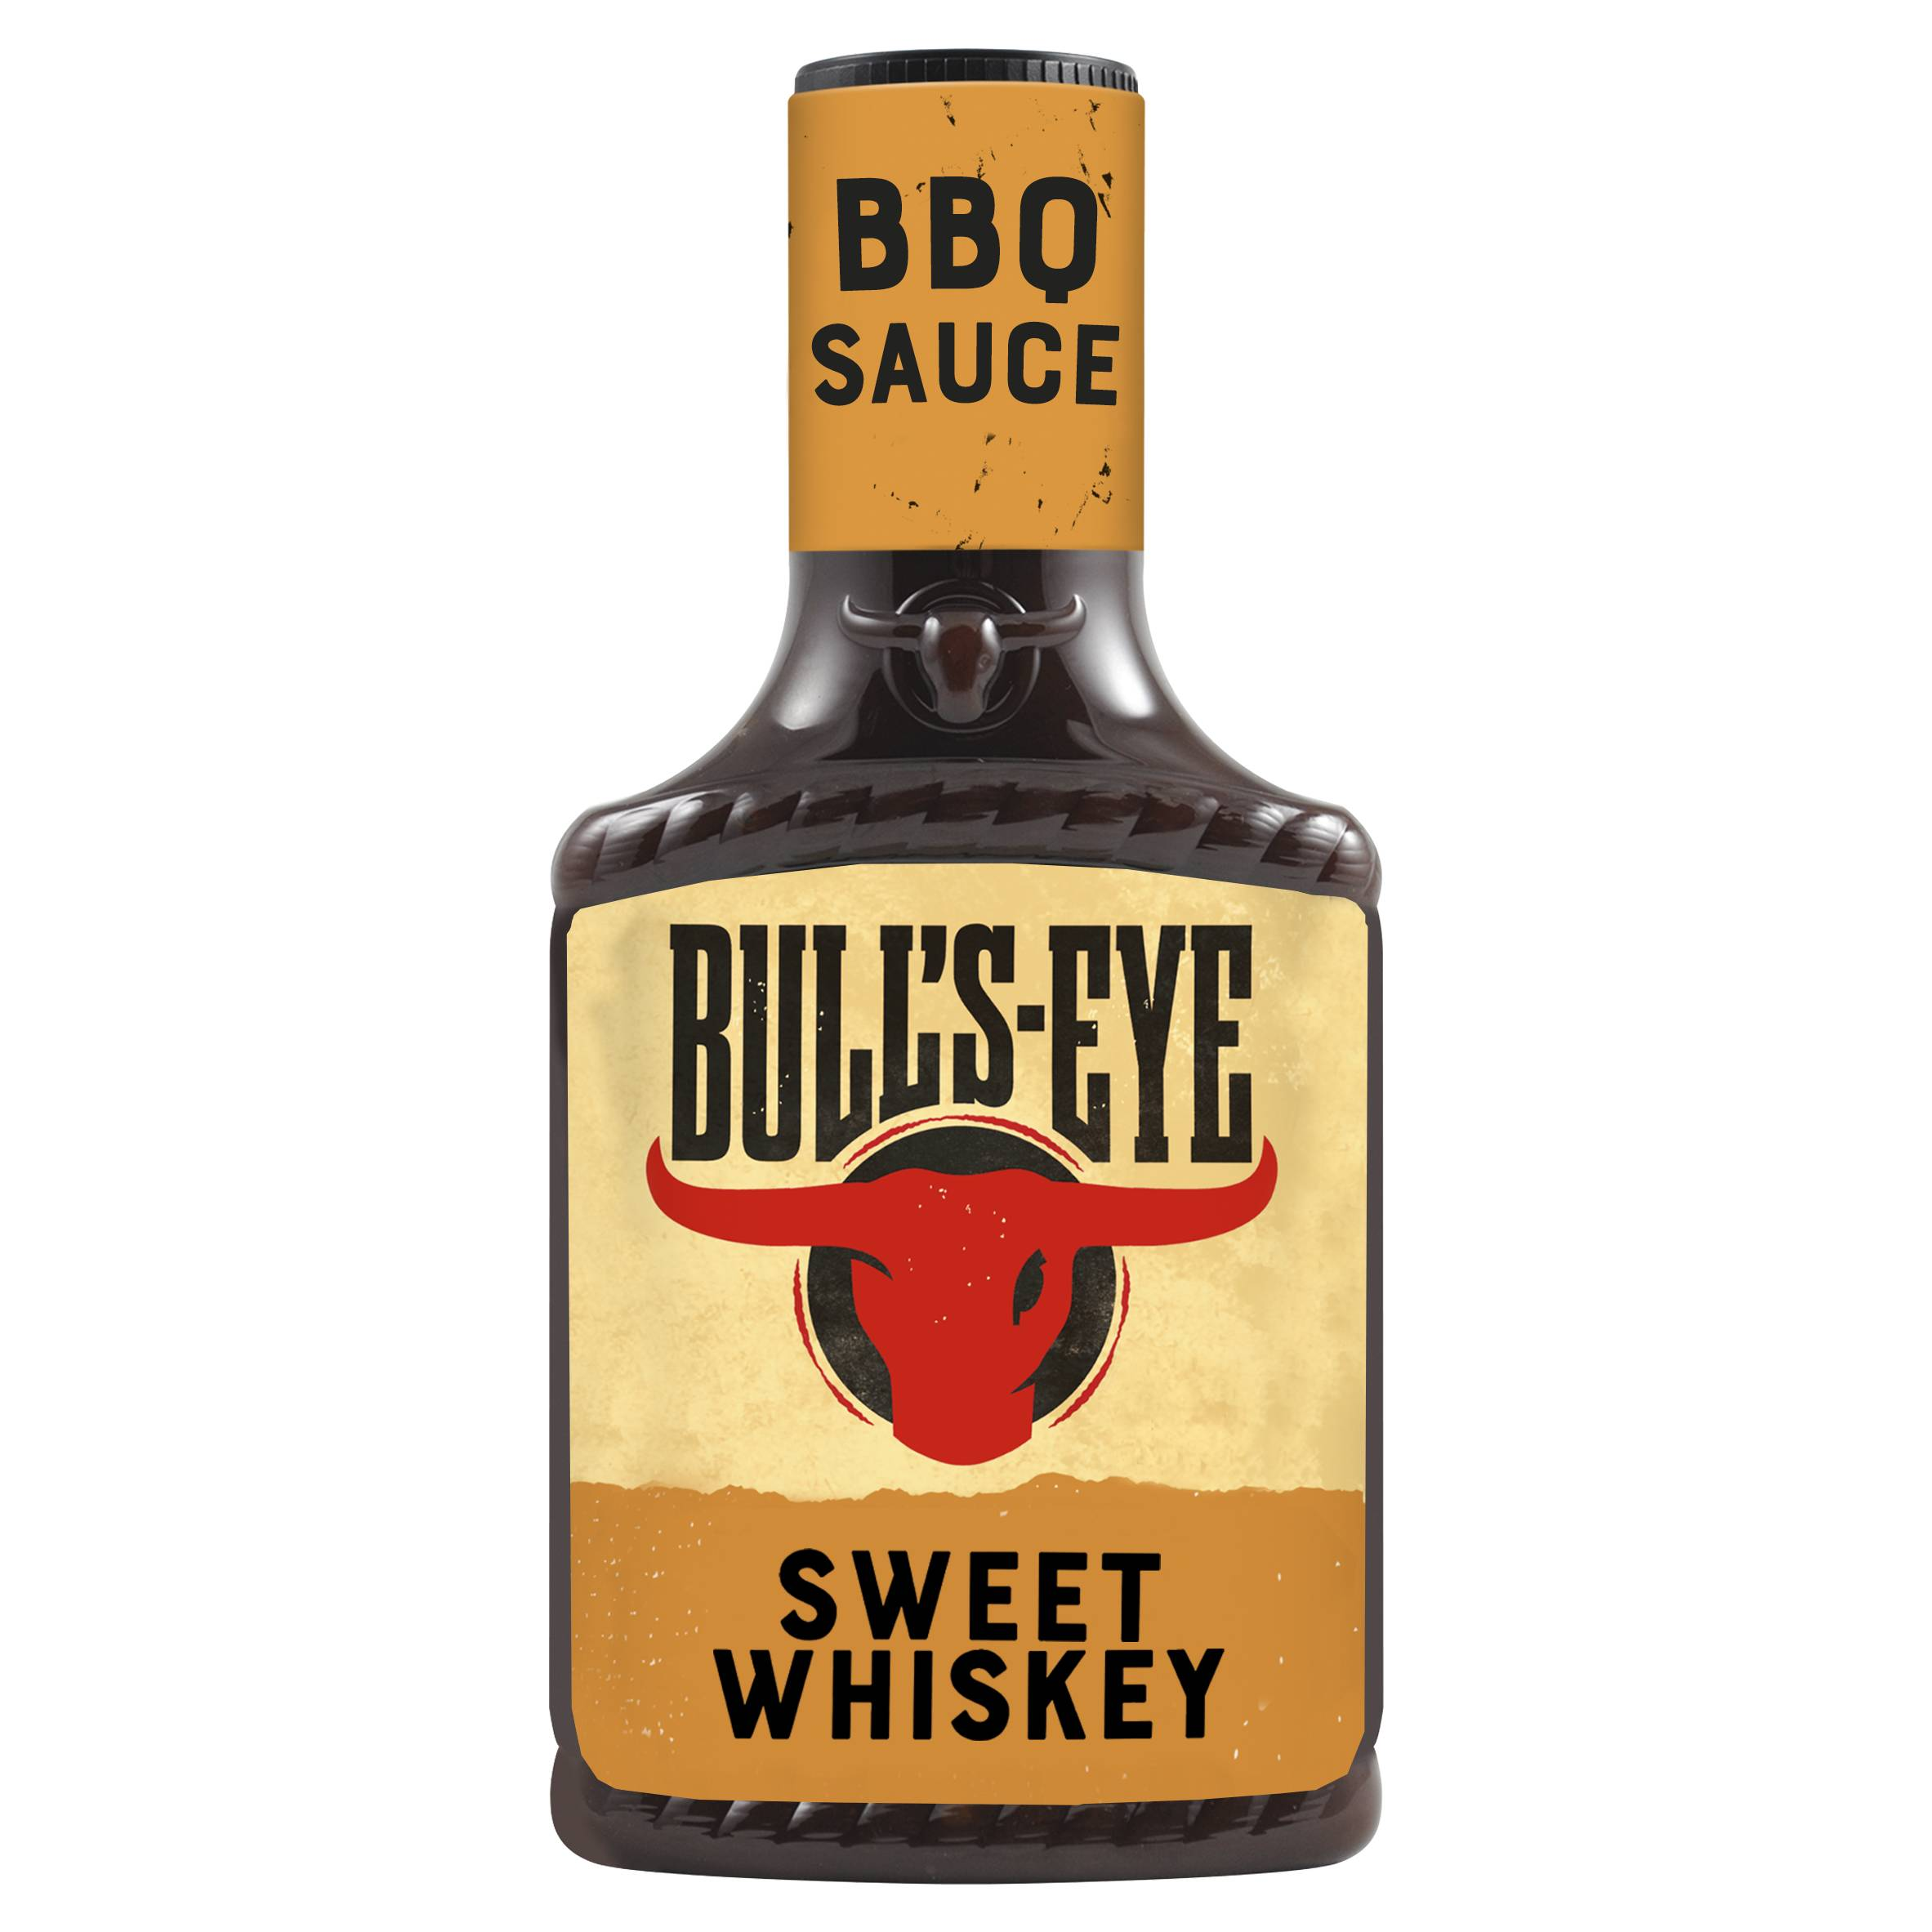 Bull's Eye Sweet Whiskey 365g Verre image